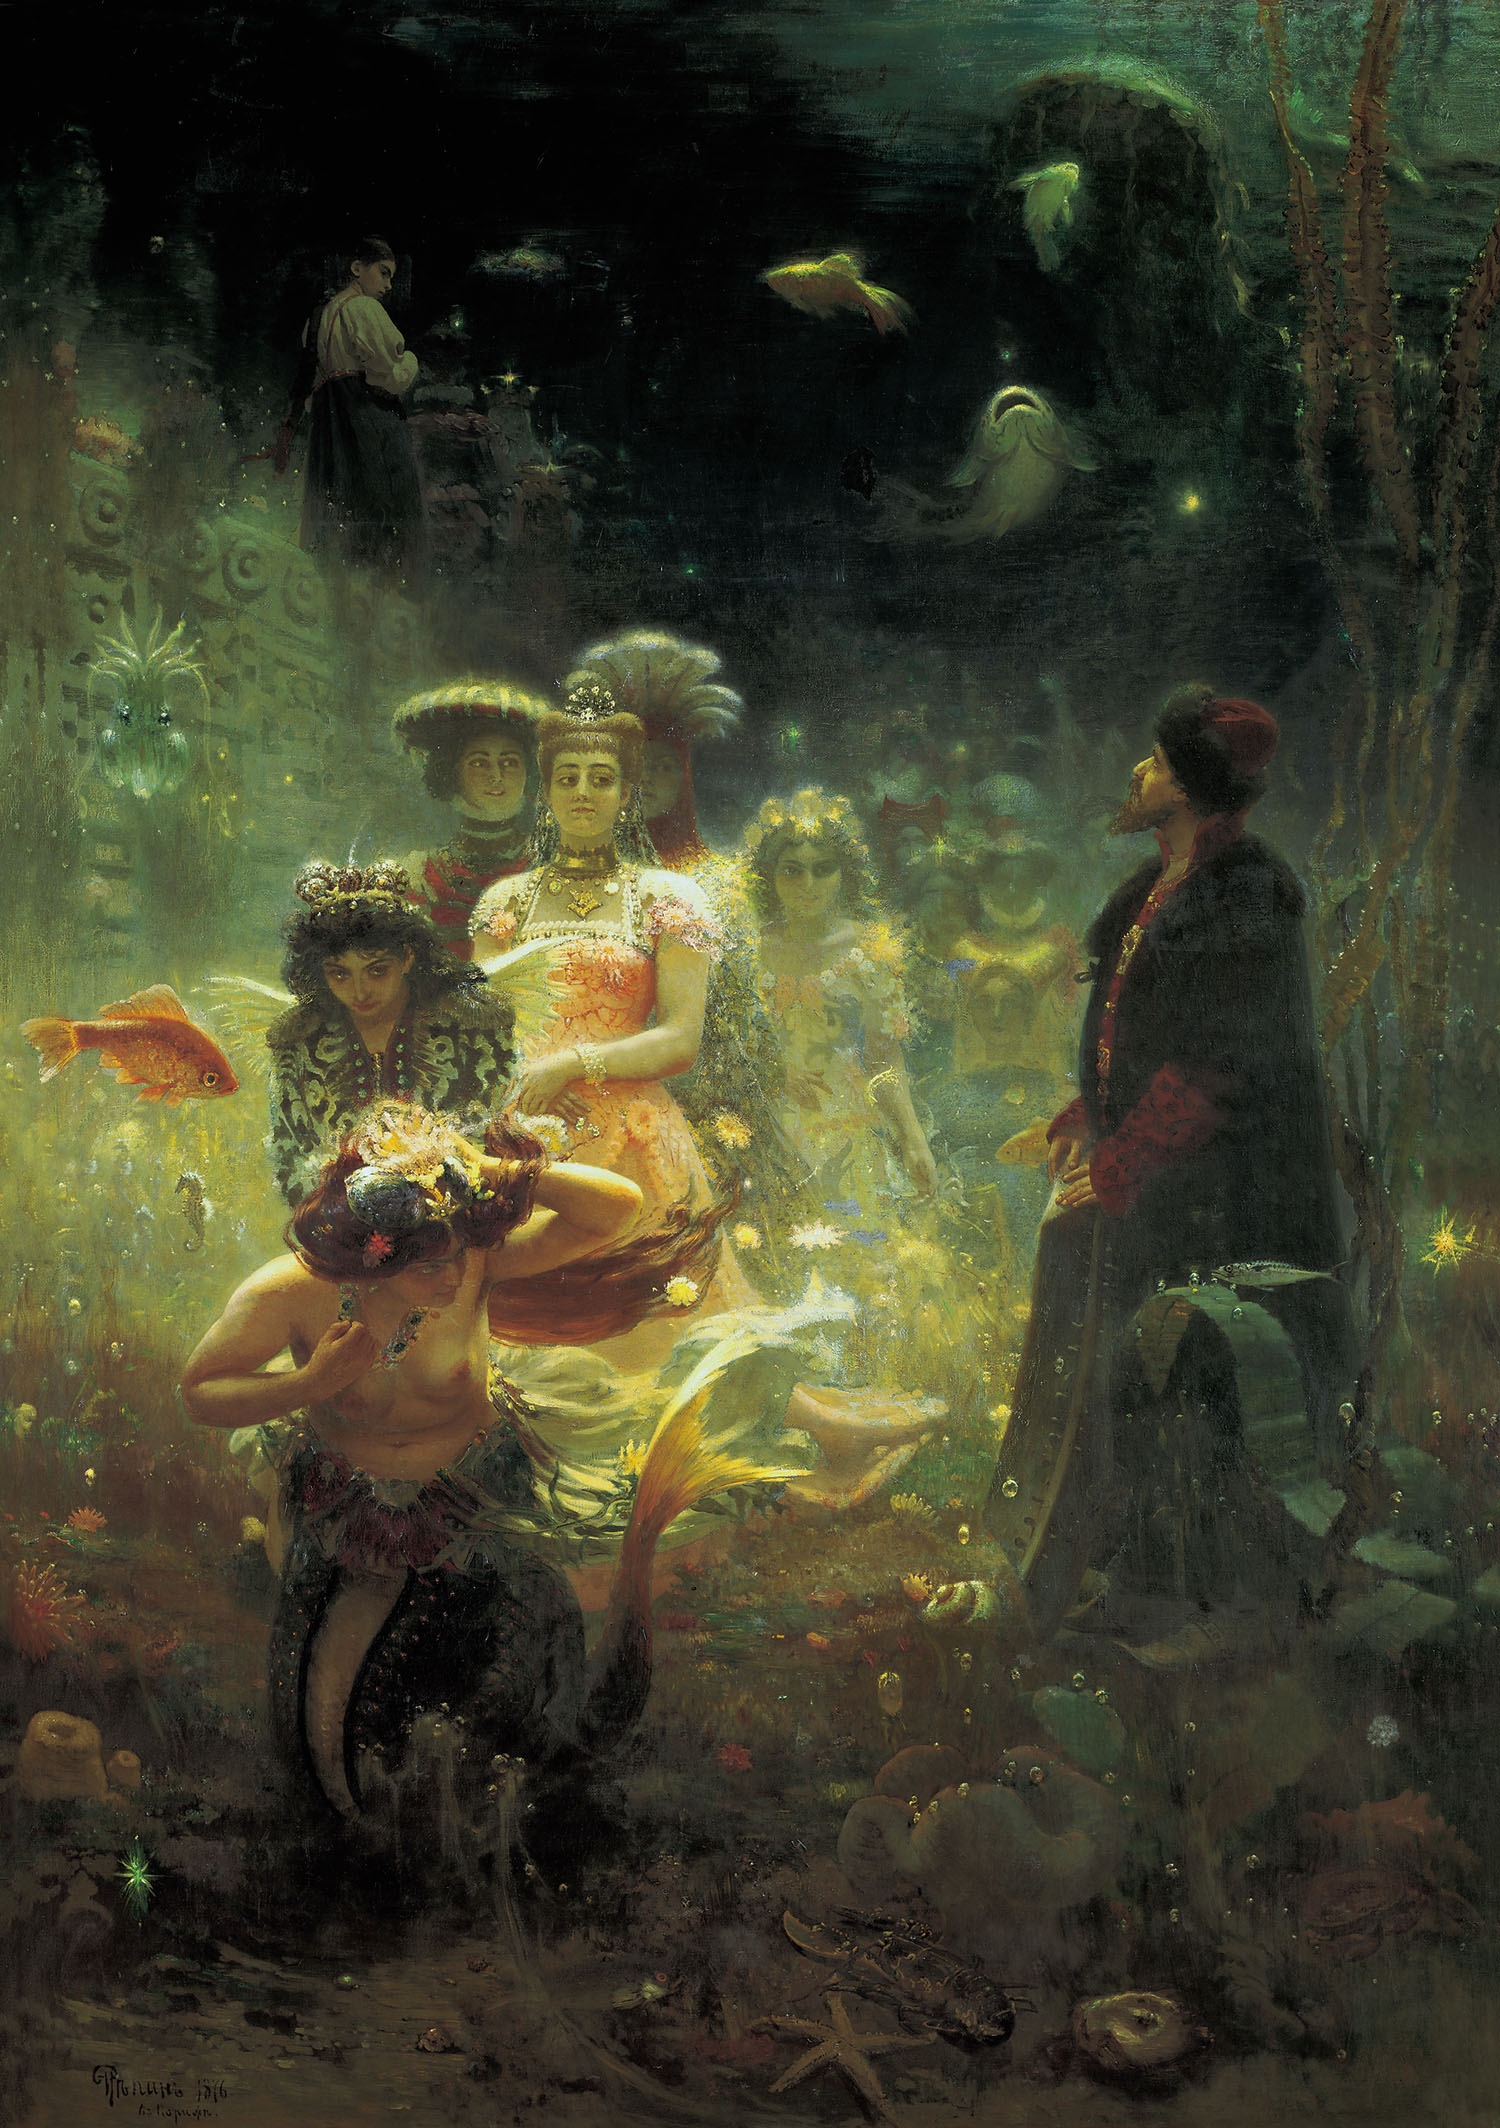 Ilya Repin, Sadko in the Underwater Kingdom. Oil on canvas, 1876. State Russian Museum, St. Petersburg, Russia.